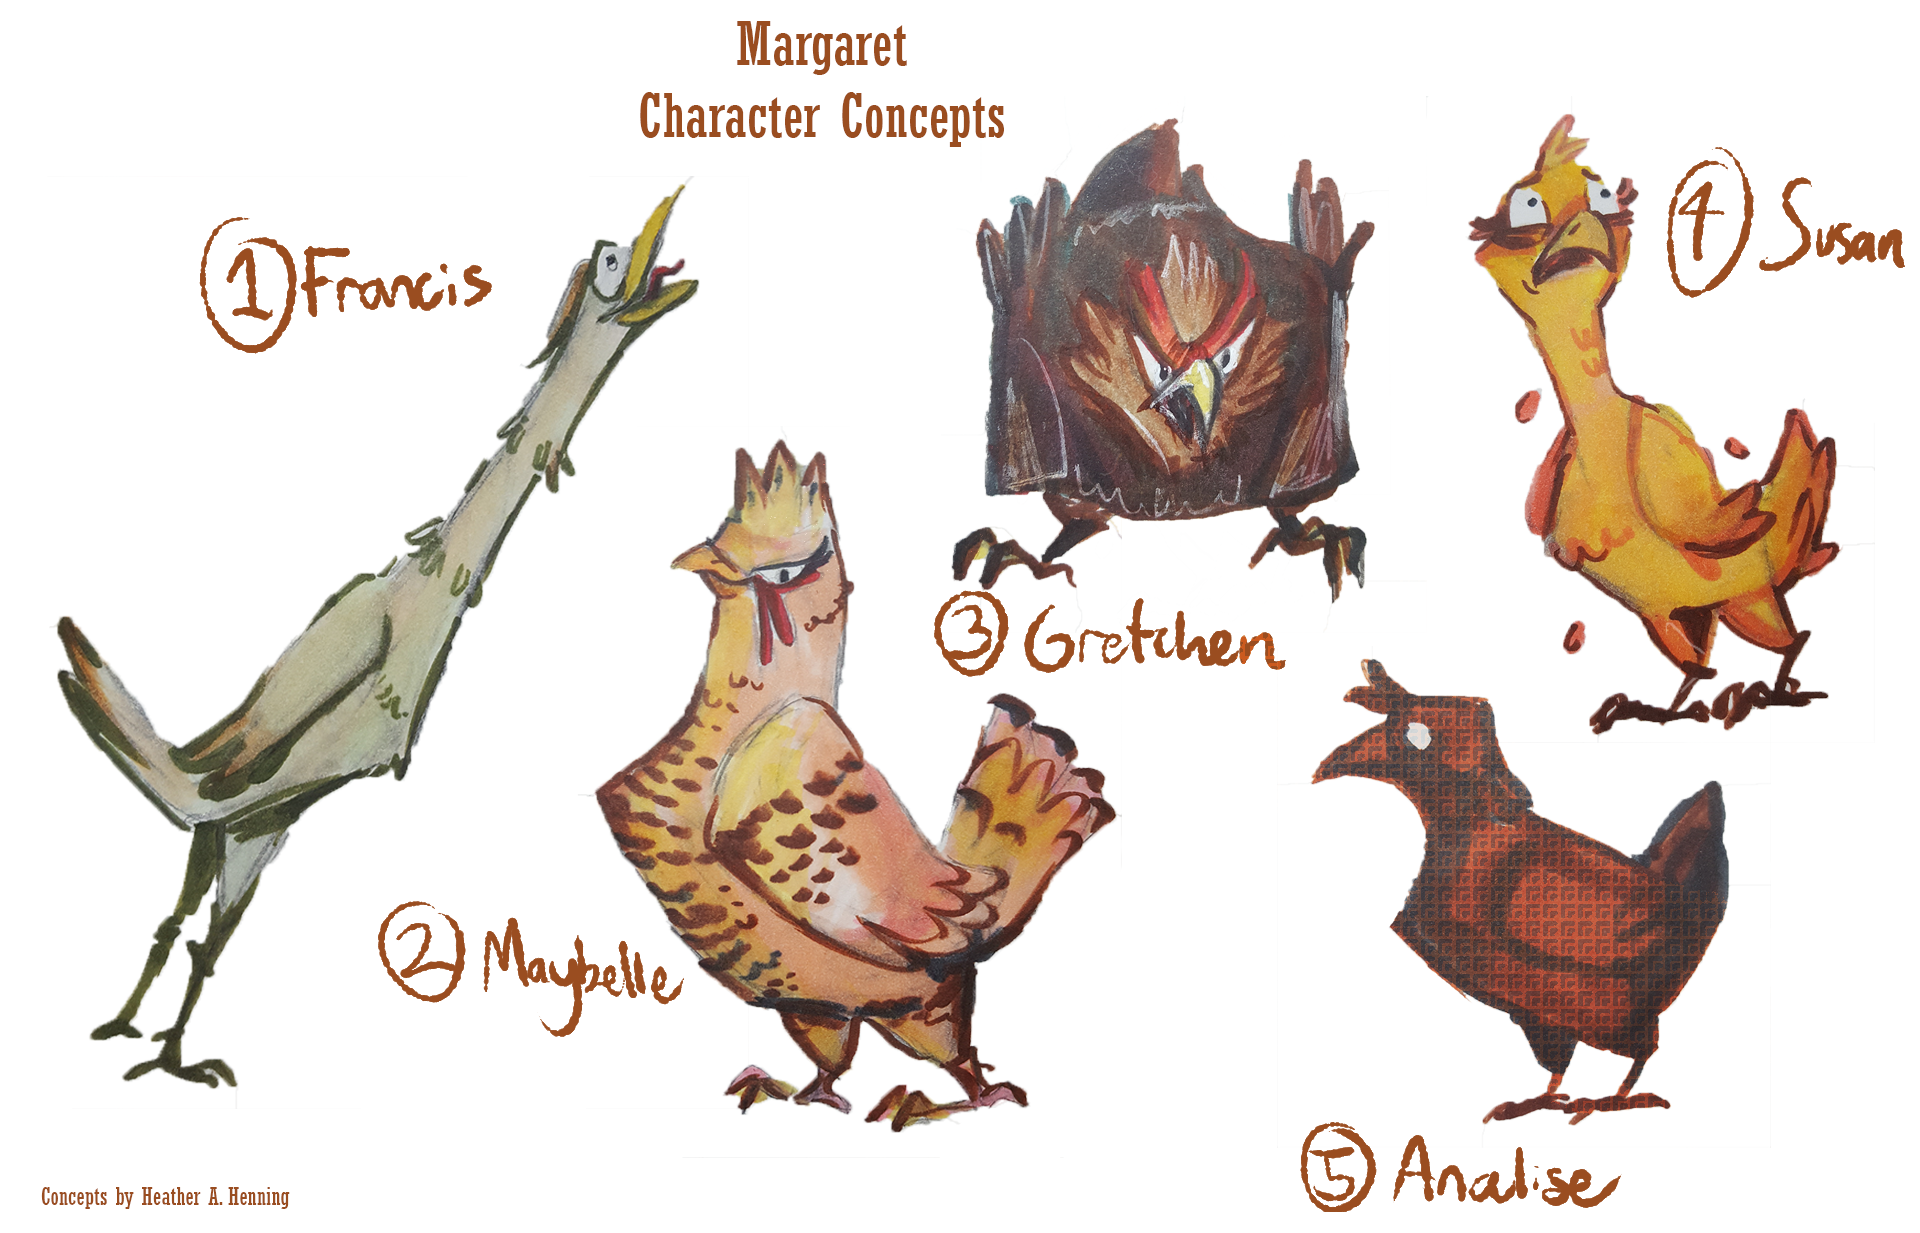 MAR_CHAR_concepts_Henning.png